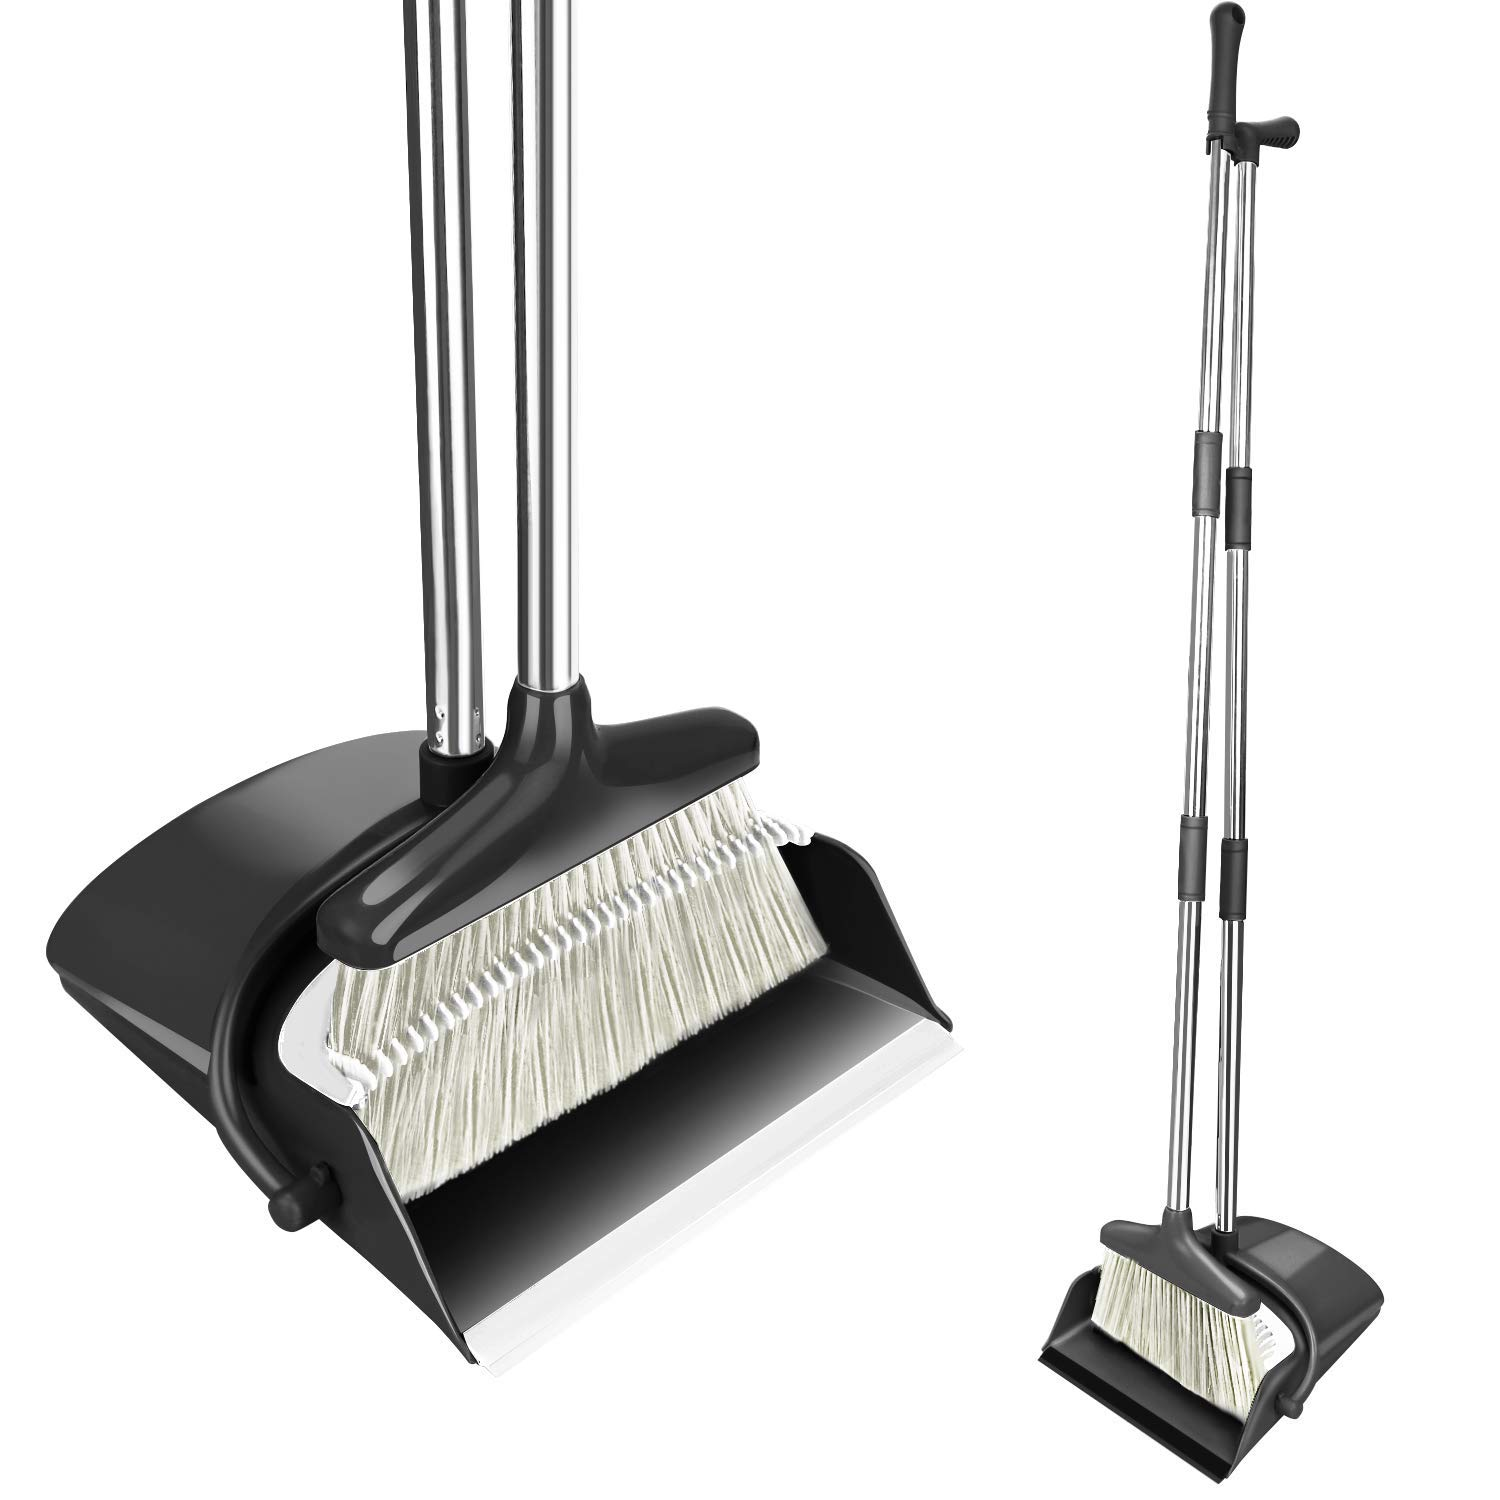 Comfortableplus Broom and Dustpan Set Self-Cleaning Broom Bristles with Dust Pan,4FT (50inch) Long Handle Combo Set for Office and Home Standing Upright Sweep no Need to Bend Over(Black) by Comfortableplus